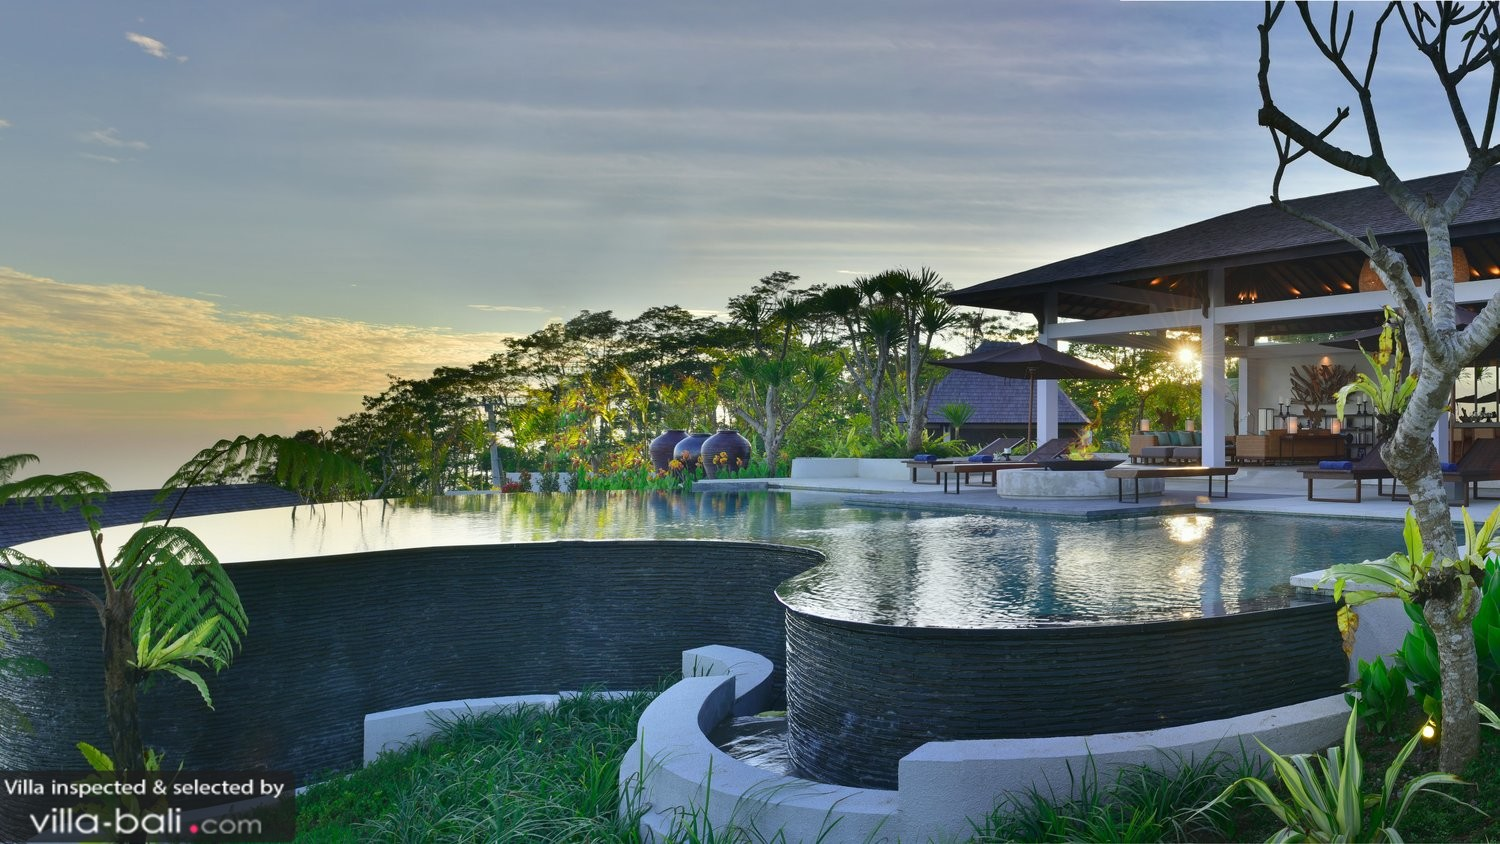 Villa Alta Vista Bali - bali villas with views